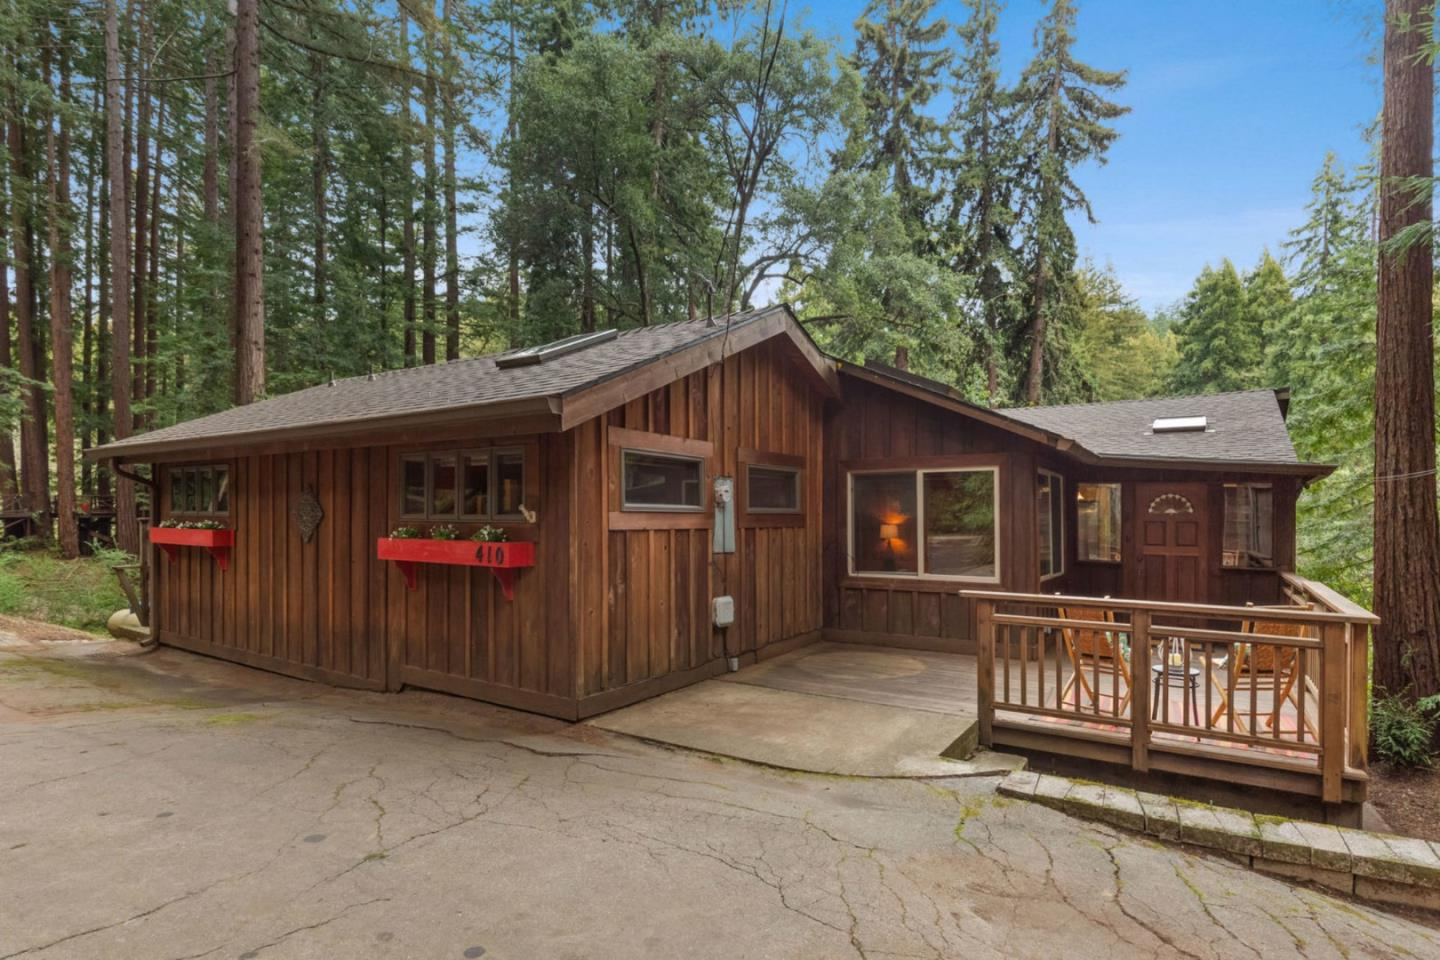 Your Polished Mountain Hideaway ~ This two bedroom, two bath 1,686 sq. ft. home sits on a sunny 12,850 sq ft lot and has many beautiful features, including knotty pine wood paneling in every room, brand new carpeting and an abundance of light from the multitude of windows and skylights throughout the home. Luxuriate in the spaciousness felt by the beautiful open beam ceiling and let your imagination be your guide when furnishing this flexible floor plan, this home can absolutely adapt to fit your unique needs. When you arent luxuriating in your new home, you can indulge in the wonder of outdoor living with your large fenced in yard, patio hot tub! Ample parking is provided by the carport with space for two vehicles, turn the detached shed into an extra office or workshop, and enjoy the comfort of the inside laundry area. This is mountain living at its finest.